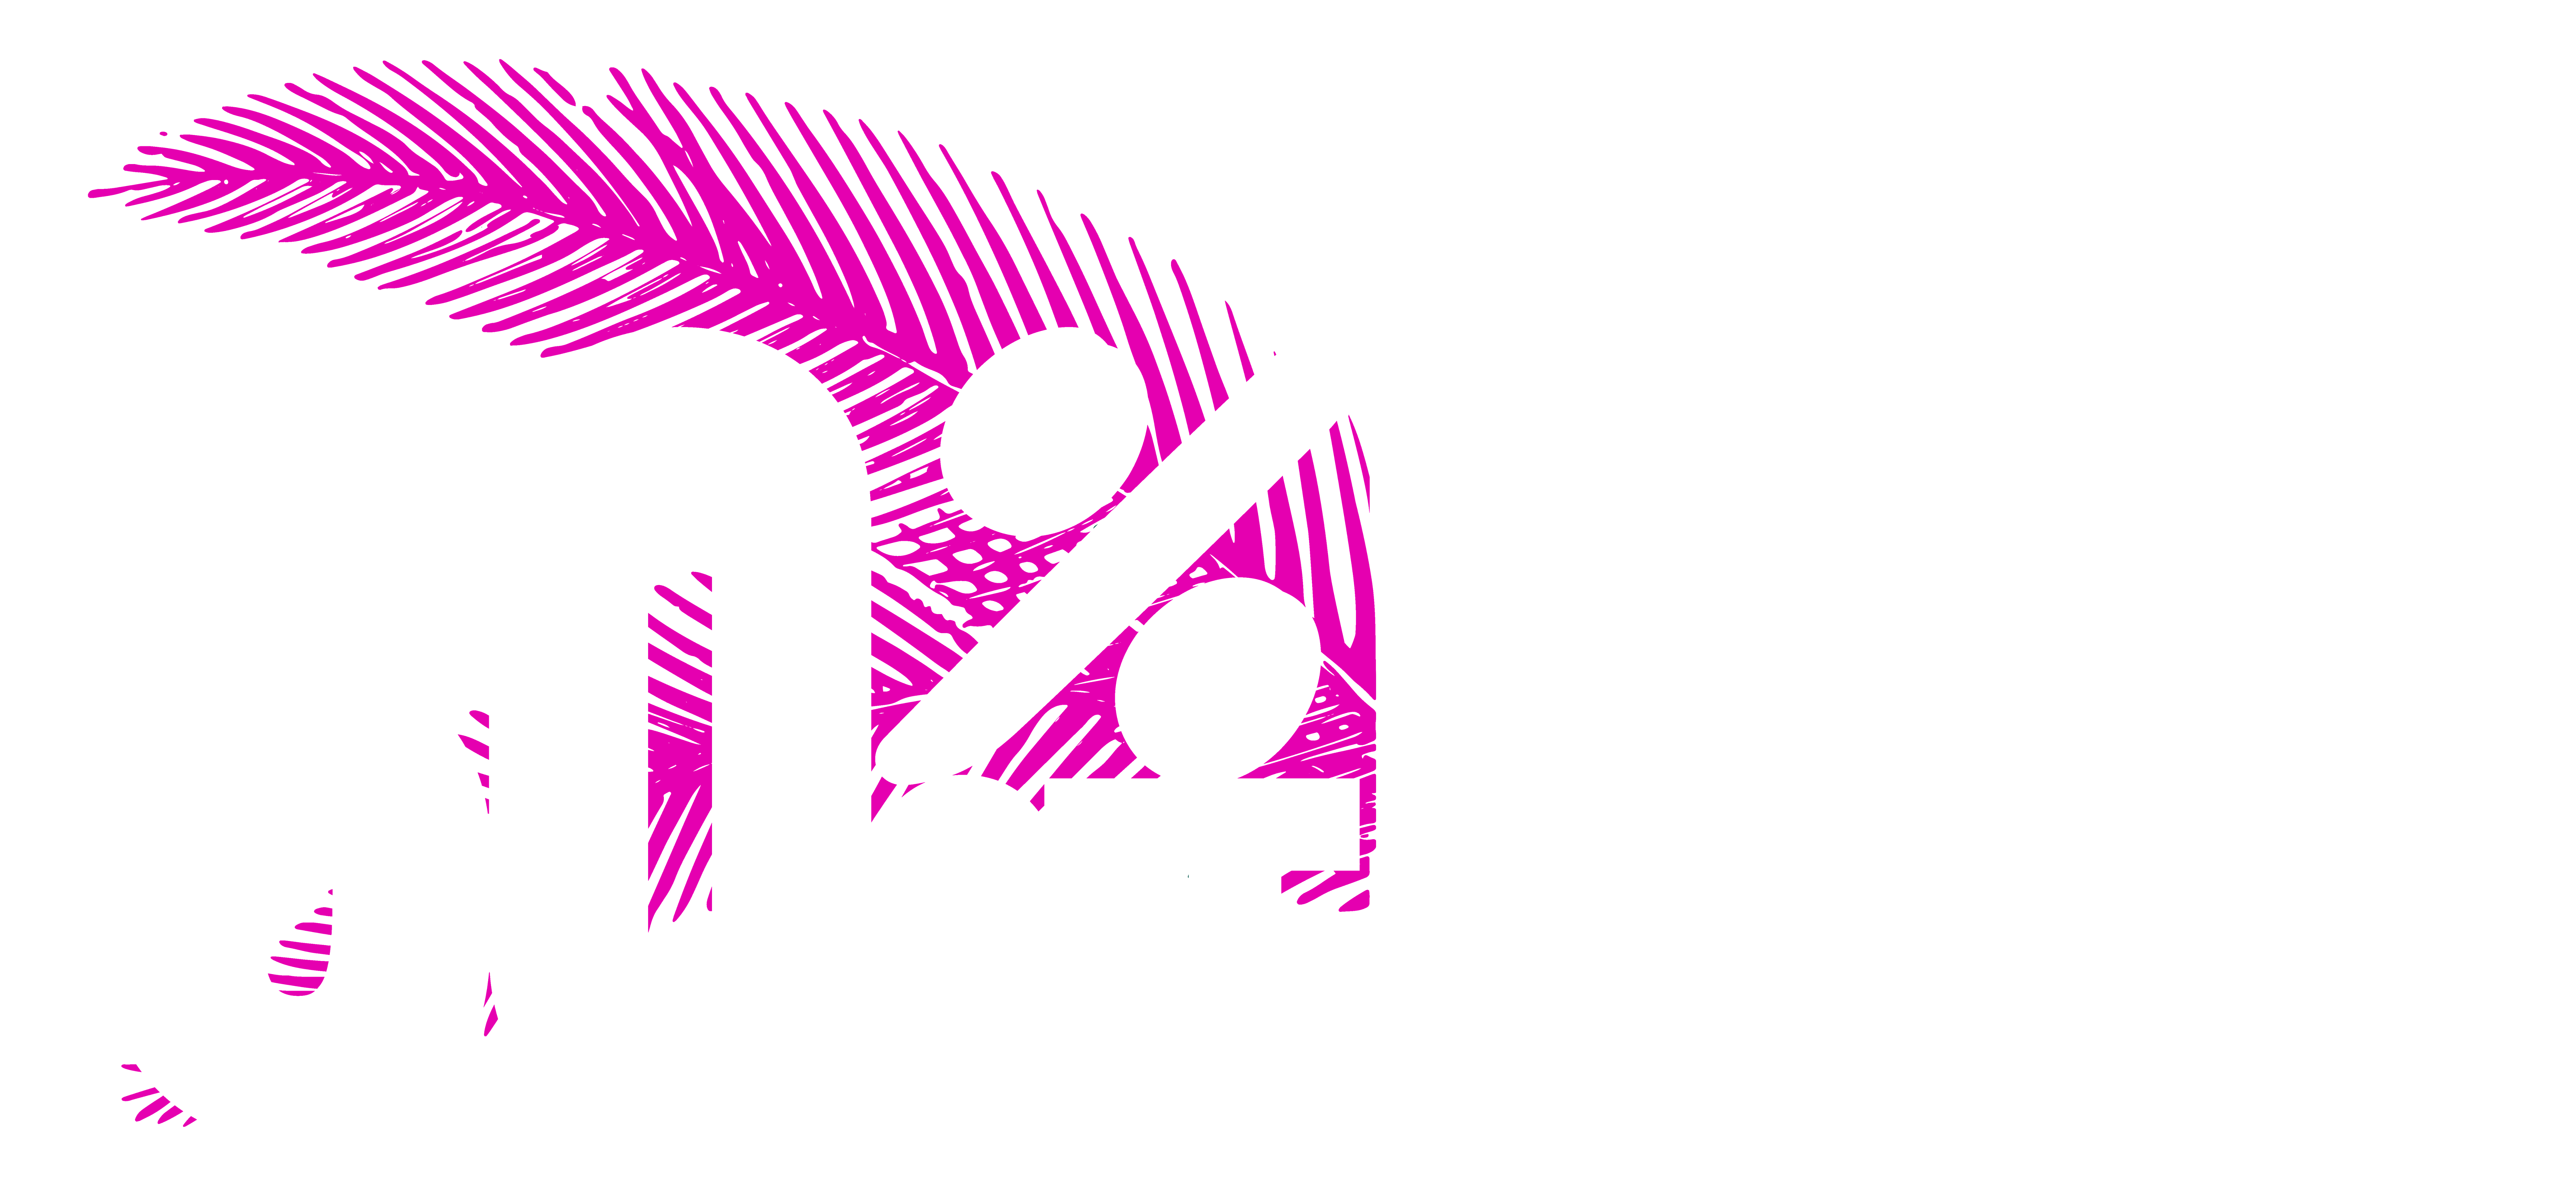 30% off summer collection at road id.